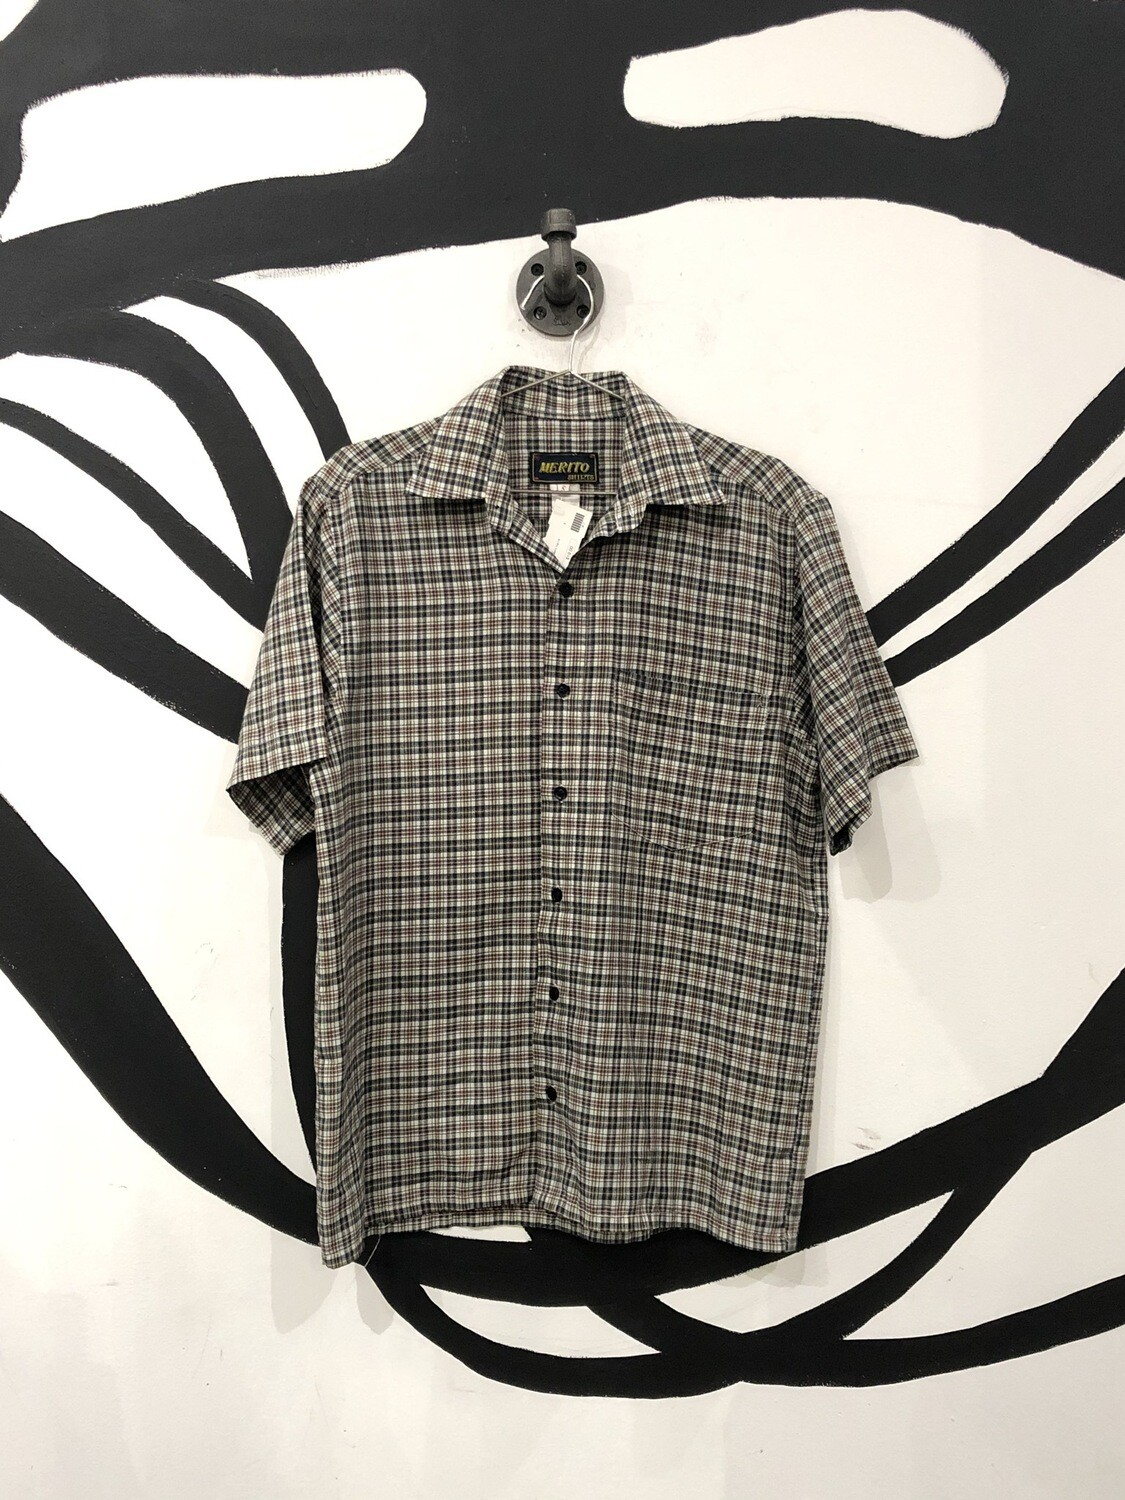 Merito Plaid Short Sleeve Button Up Size S